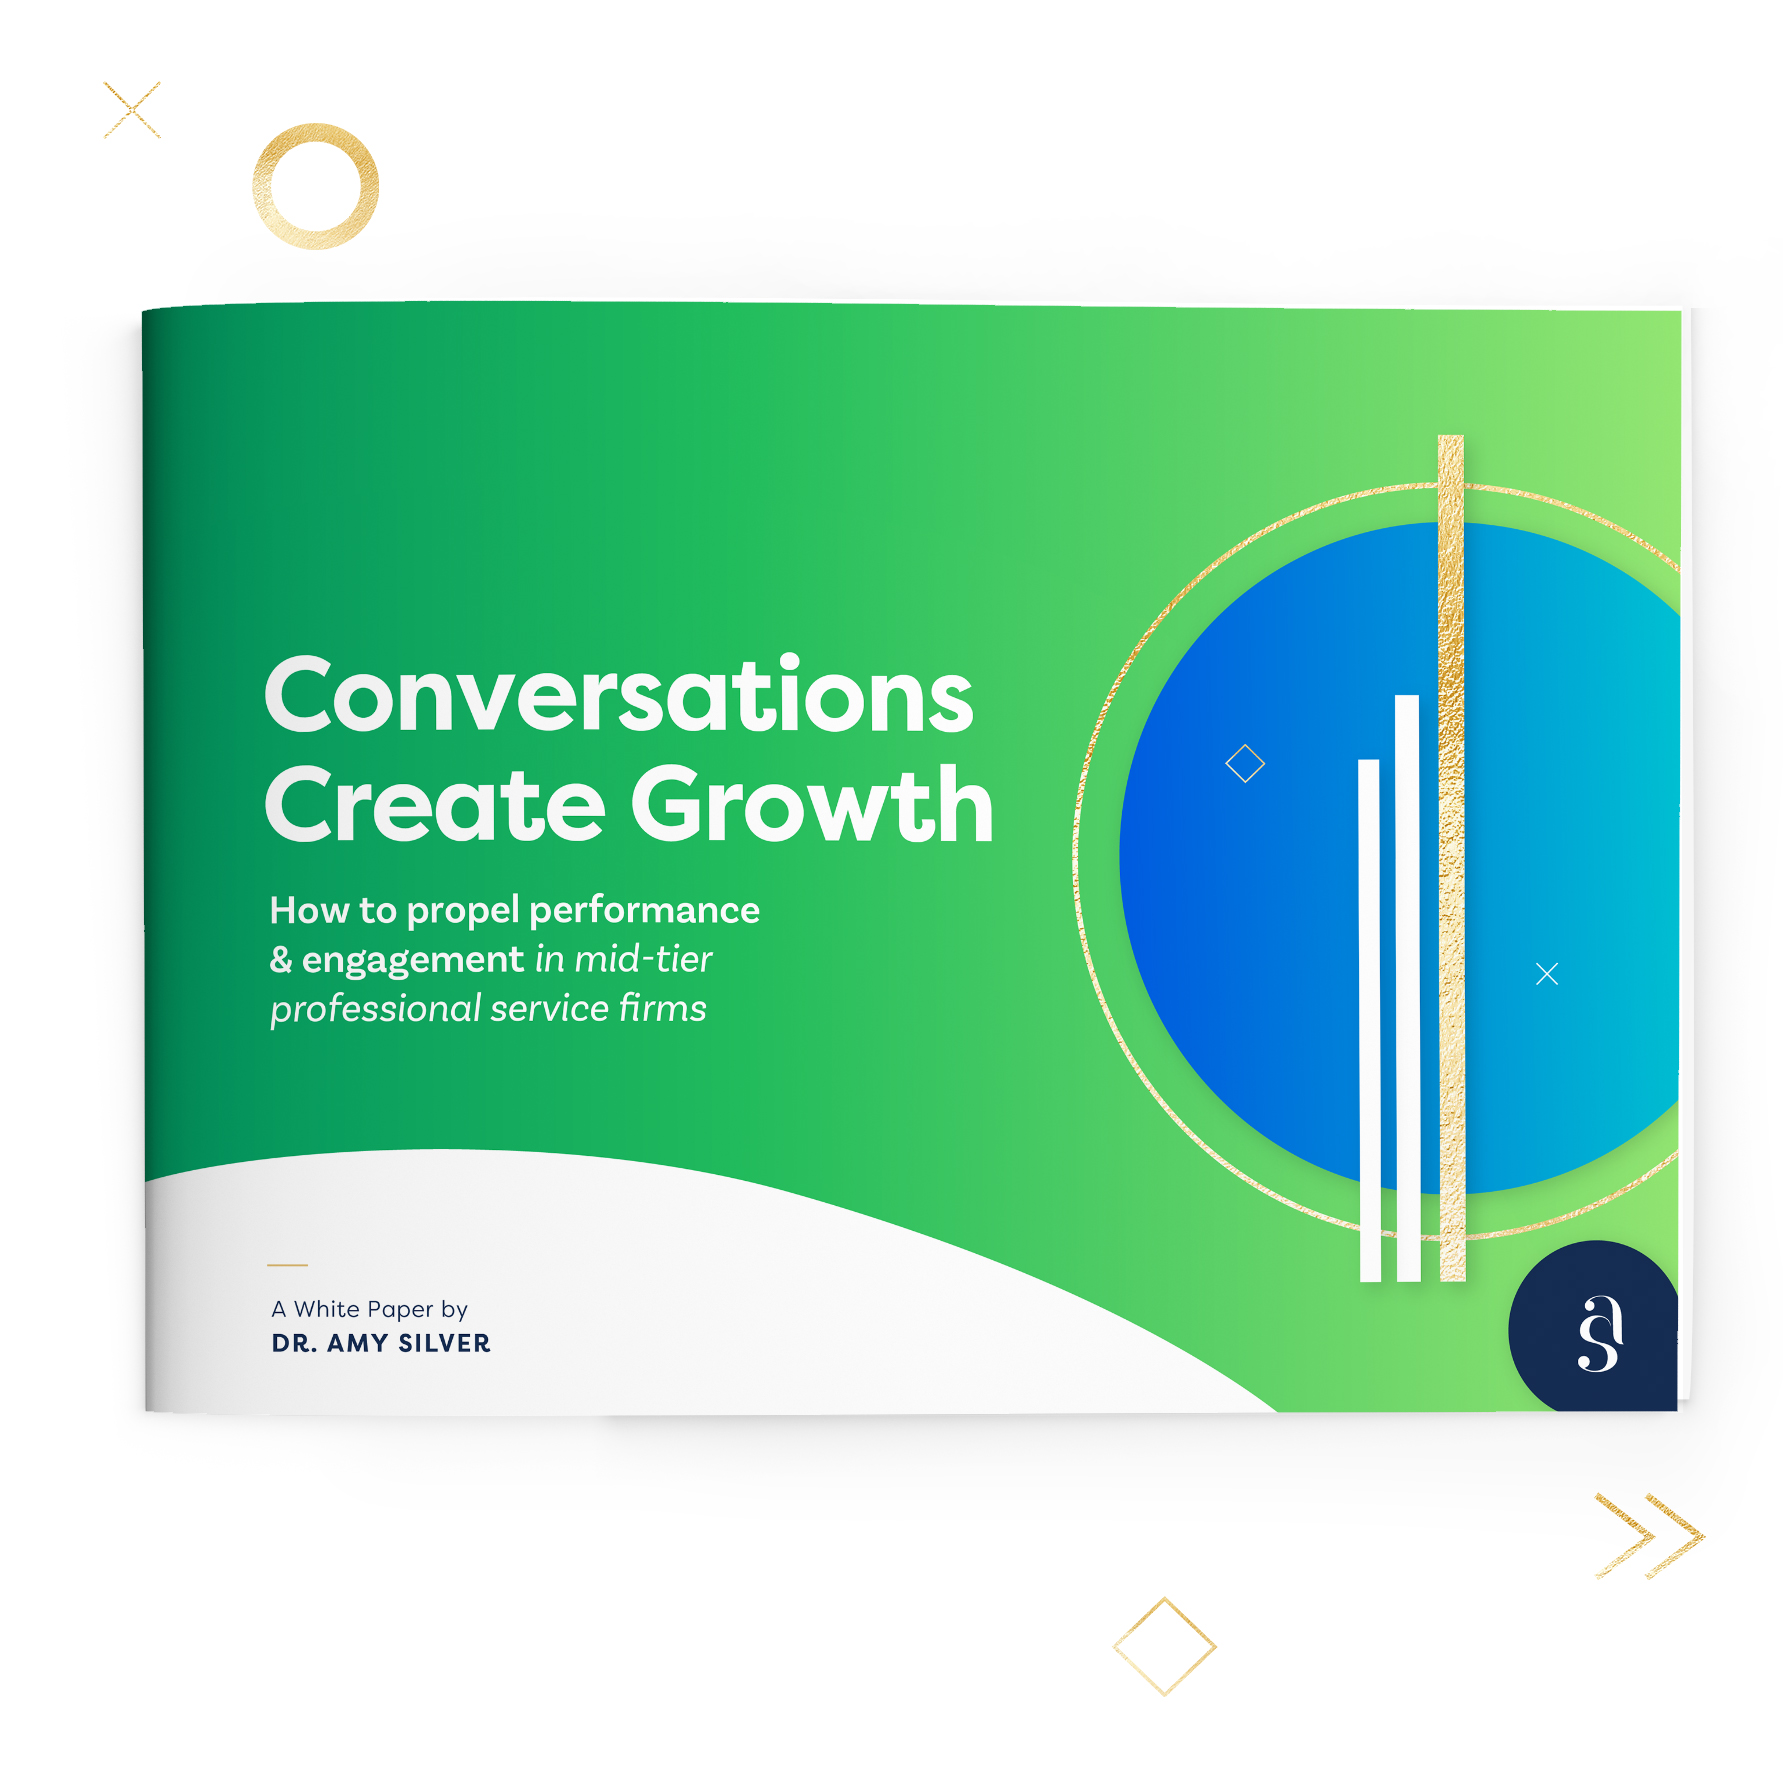 Conversations create growth white paper Dr Amy Silver